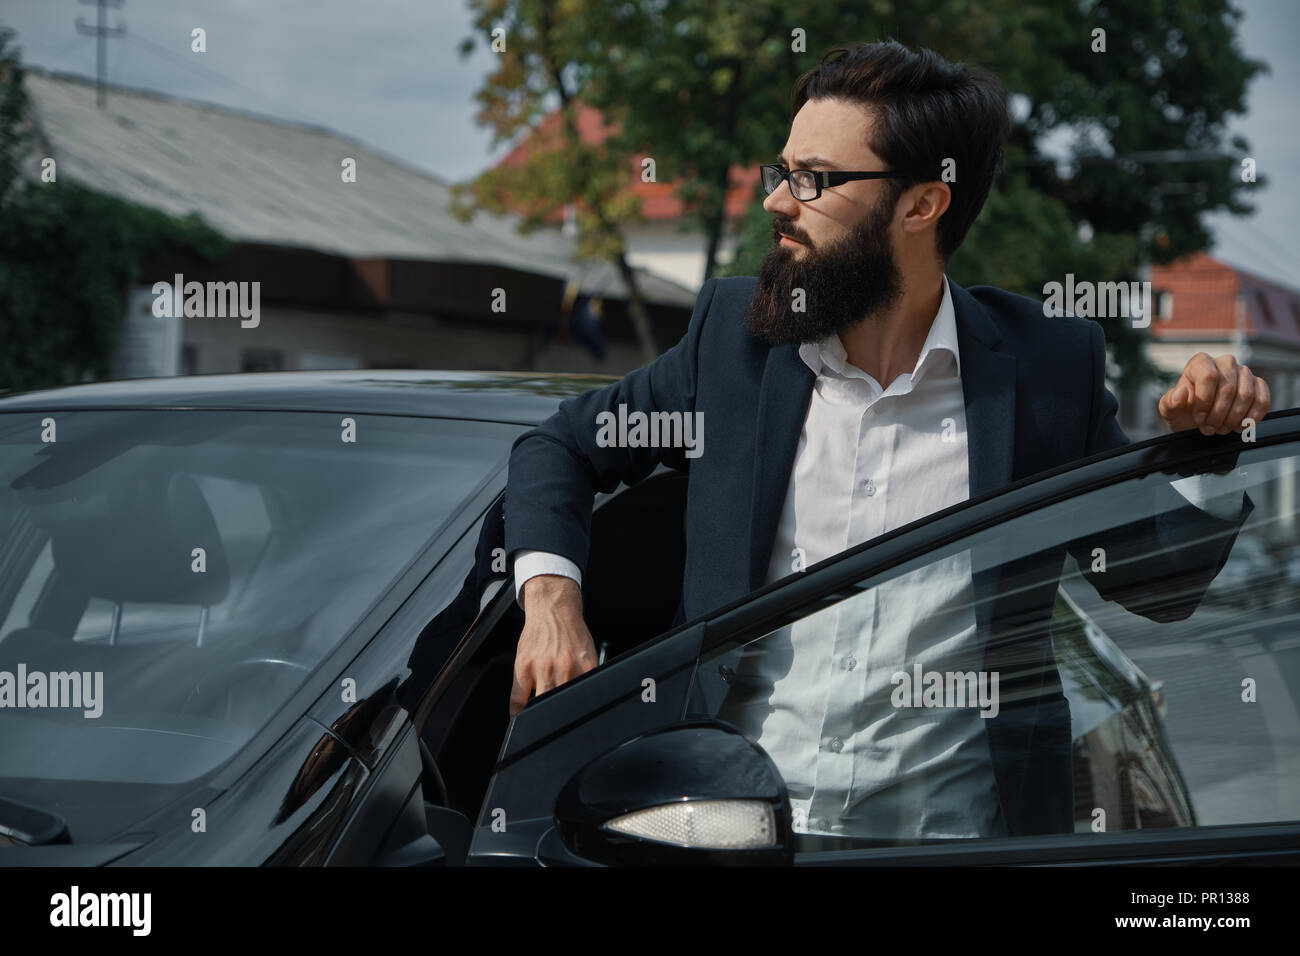 Confident in his choice. Confident man in formal wear holding hand on opened car door and looking to the right while fixing his glasses with hand. - Stock Image